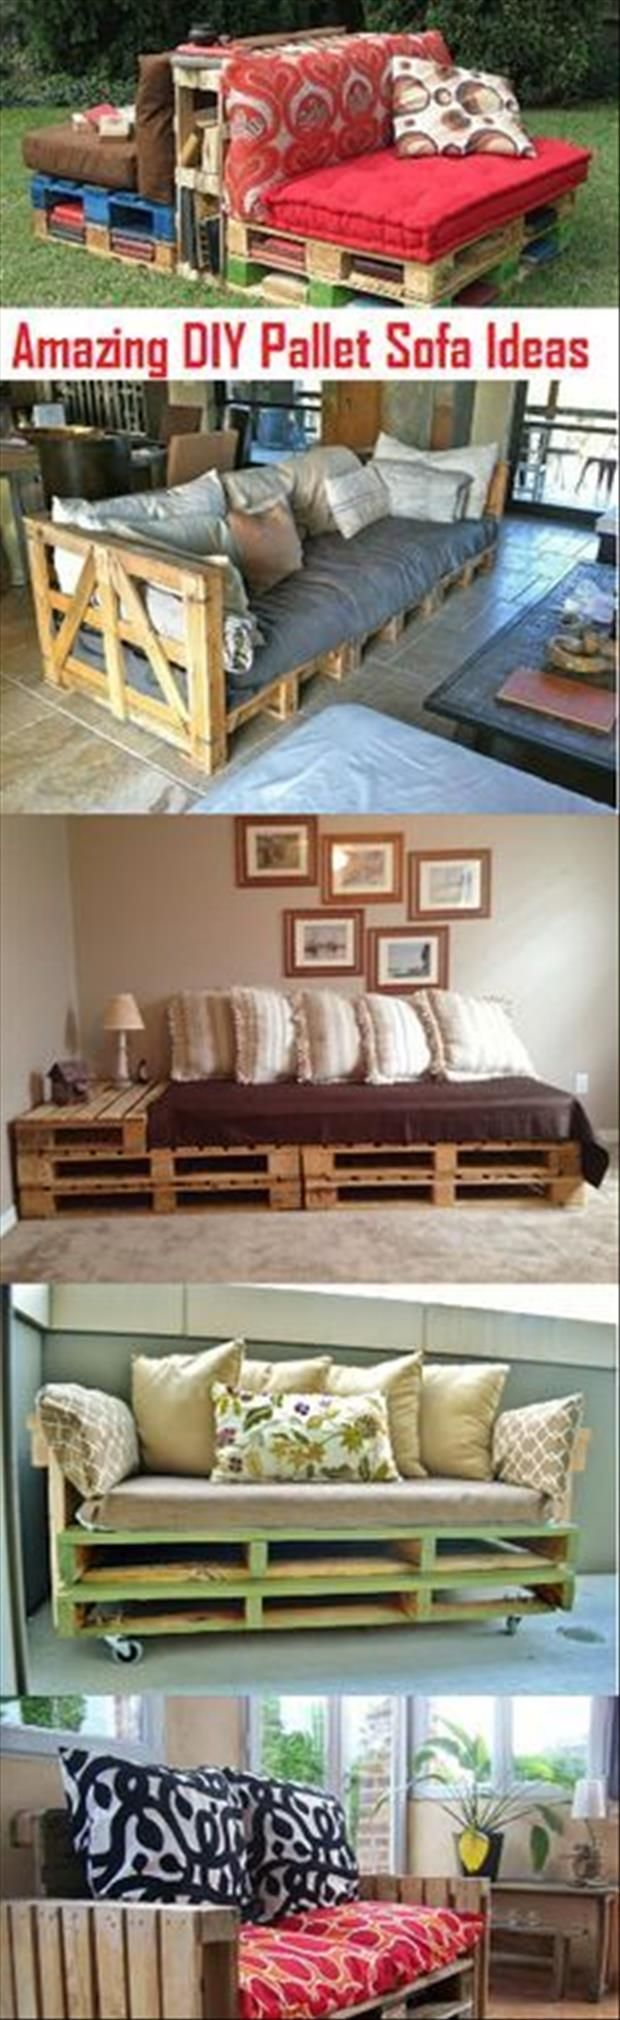 best upcycle furnishings images on pinterest good ideas home